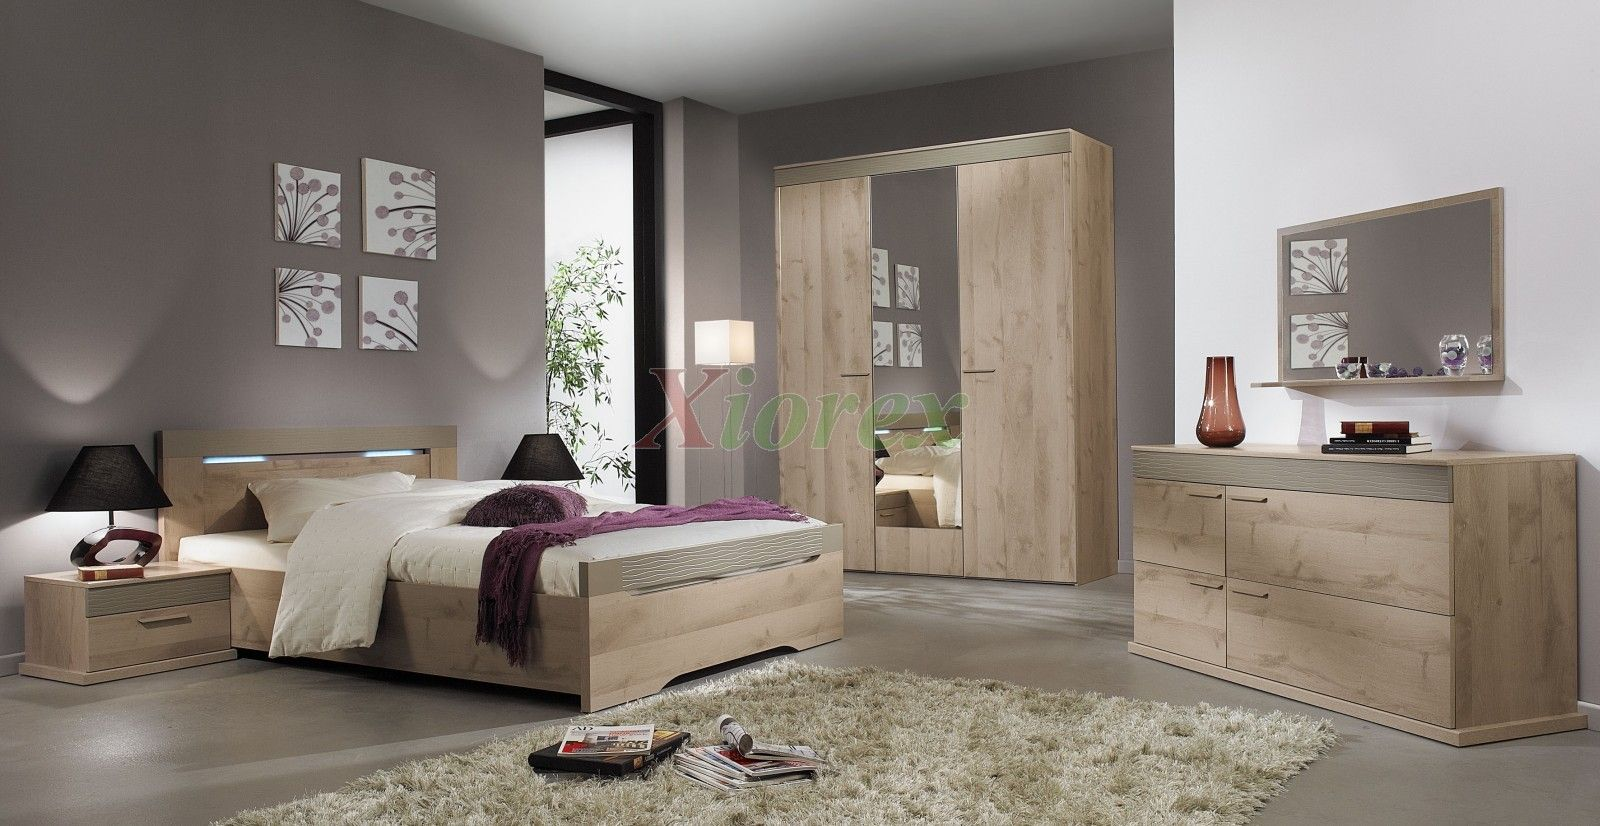 Oak effect bedroom furniture sets - Master Bed Sets Gami Perla Bed Sets By Gautier Come With Modern Master Beds And Enhance Your Bedroom Decor Perla Bed Sets In Plum And Taupe Oak Effect